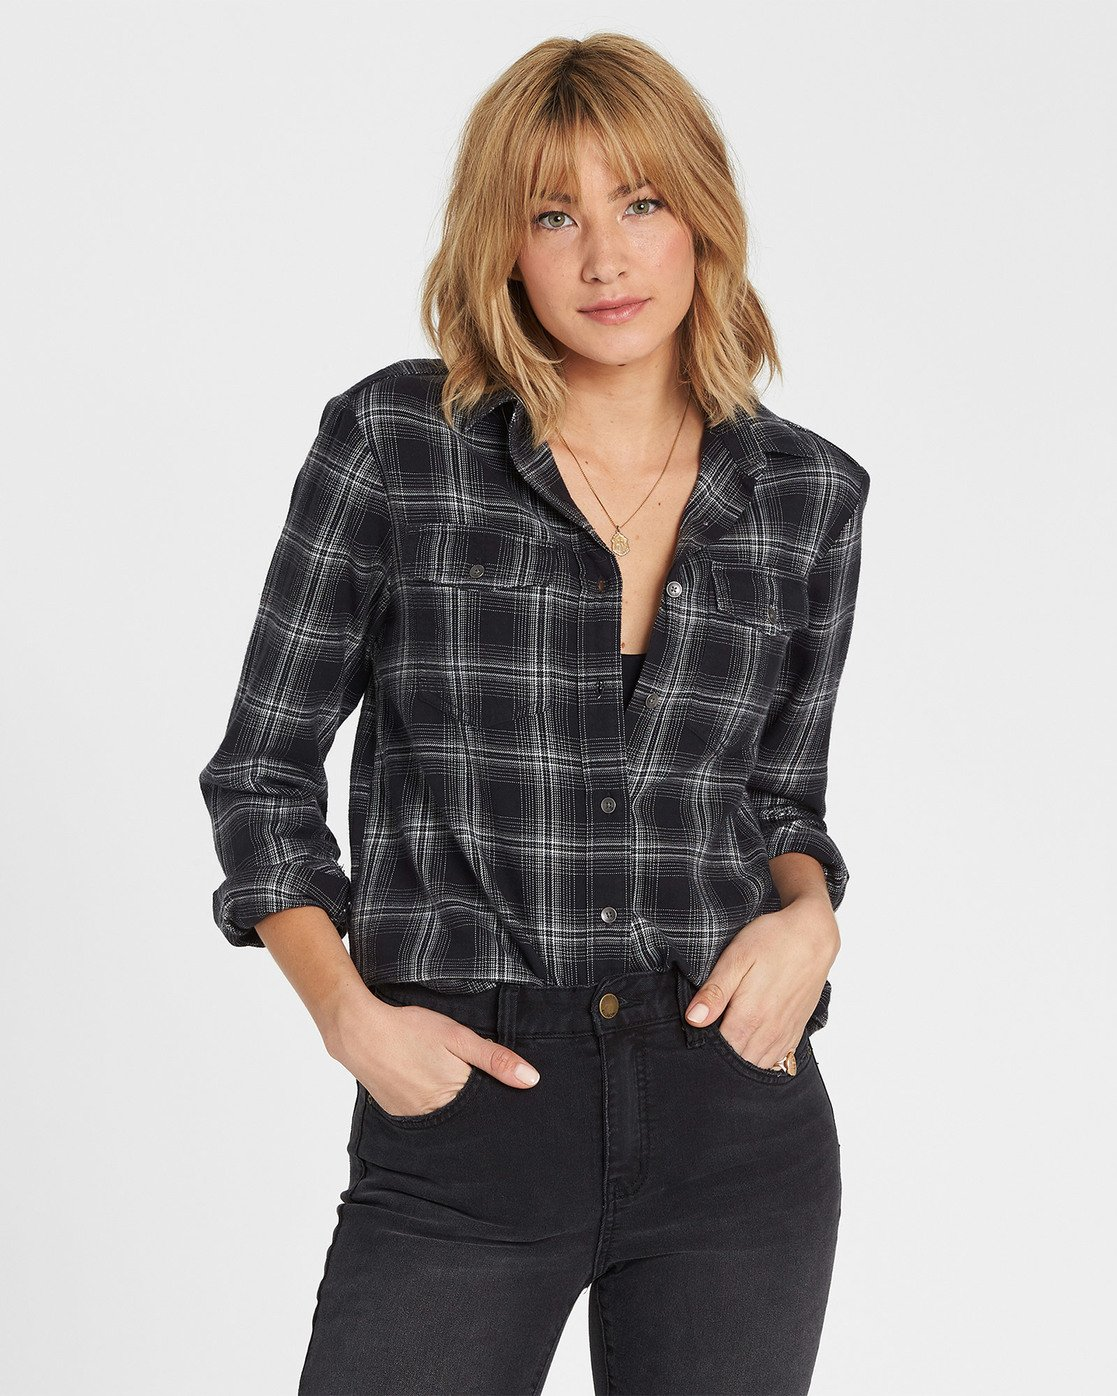 Womens Flannel Shirts and Women's Fair Trade Clothes Review